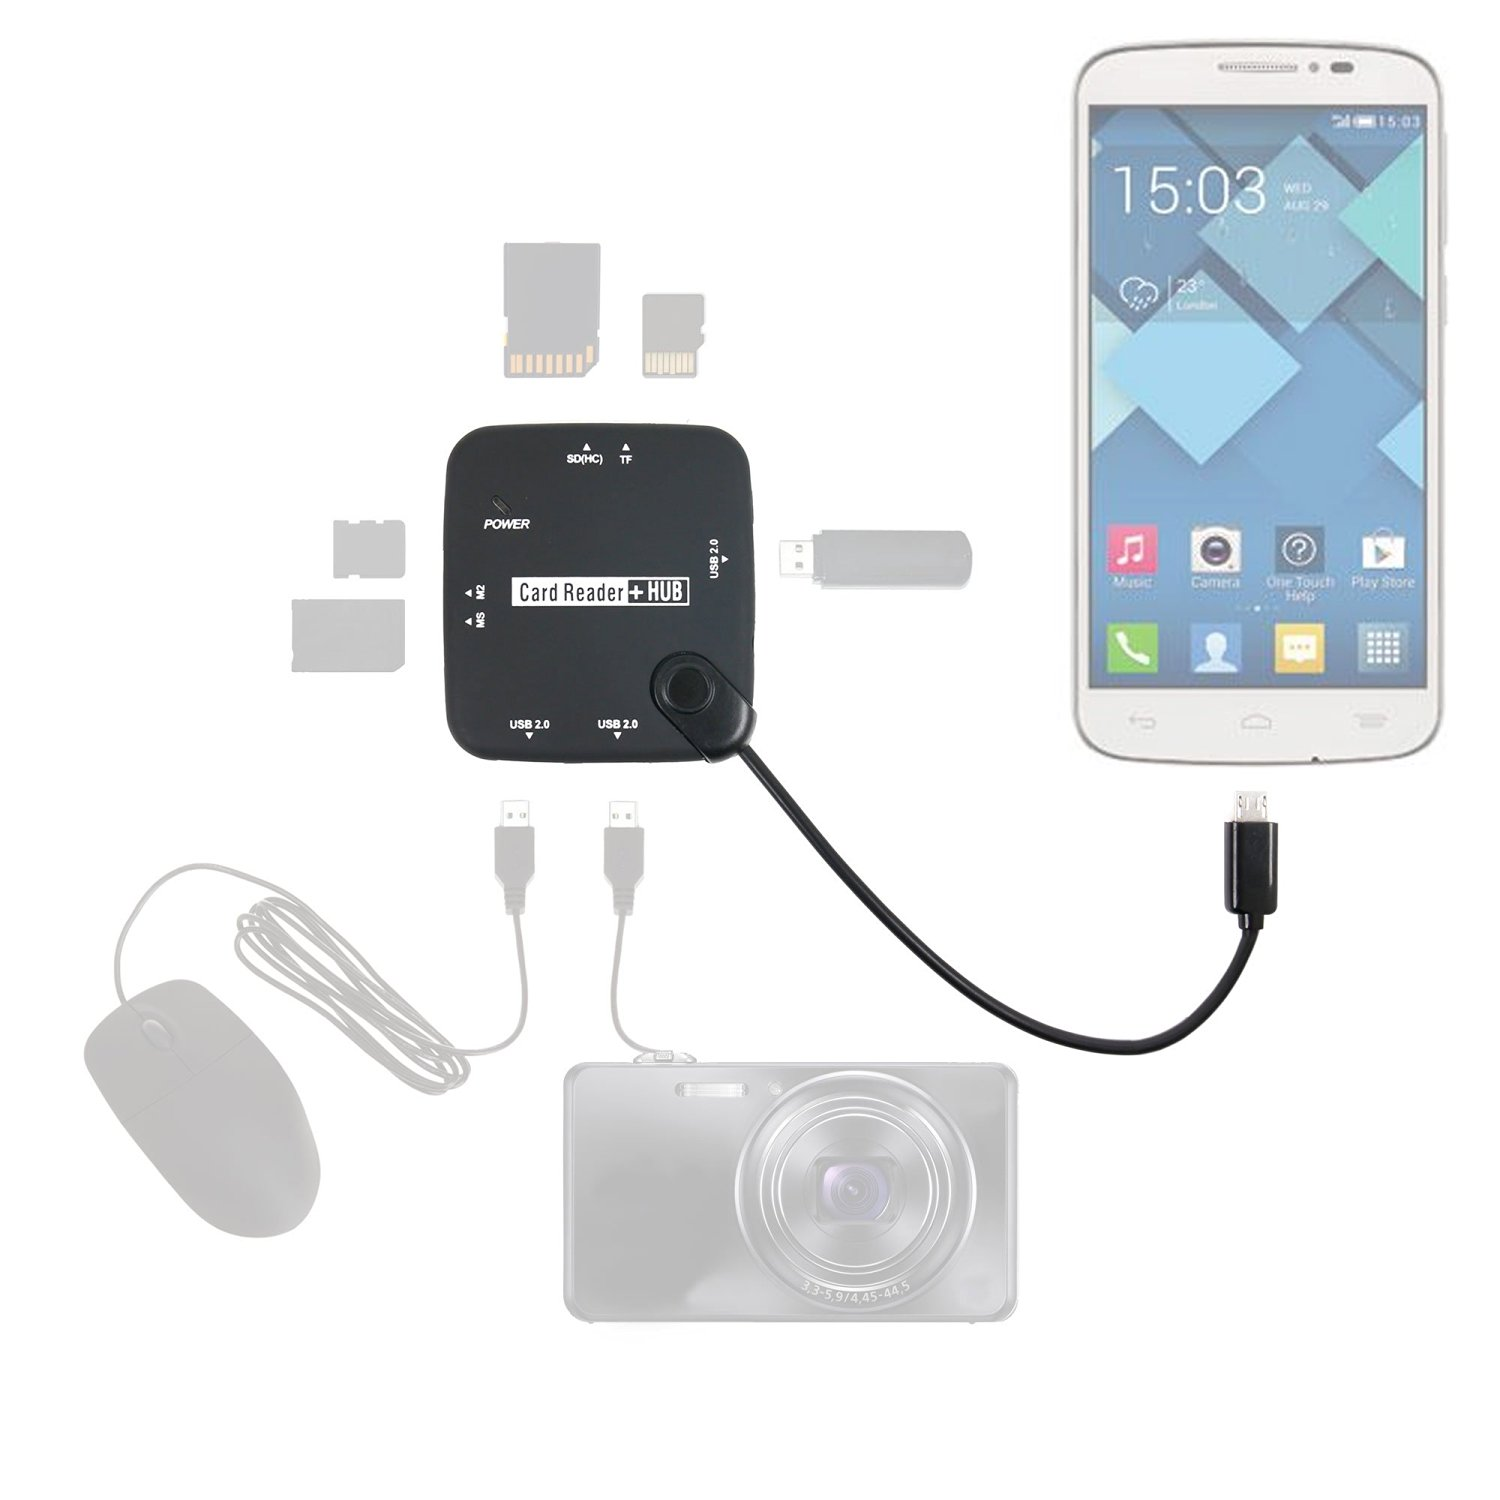 """DURAGADGET Multi-Functional All in One Card Reader + 3 USB (2.0 Compatibility) HUB with Micro USB Connectivity for Alcatel OneTouch IDOL 3 (4.7), Alcatel OneTouch IDOL 3 (5.5""""), Alcatel One Touch Pop Fit, Pop C7, Pop C5, Pop S3, Pop S7, Pop S9, Pop 2 (5), Pop 2 (4.5), Pop 2 (4), PIXI 3(3.5) & PIXI"""